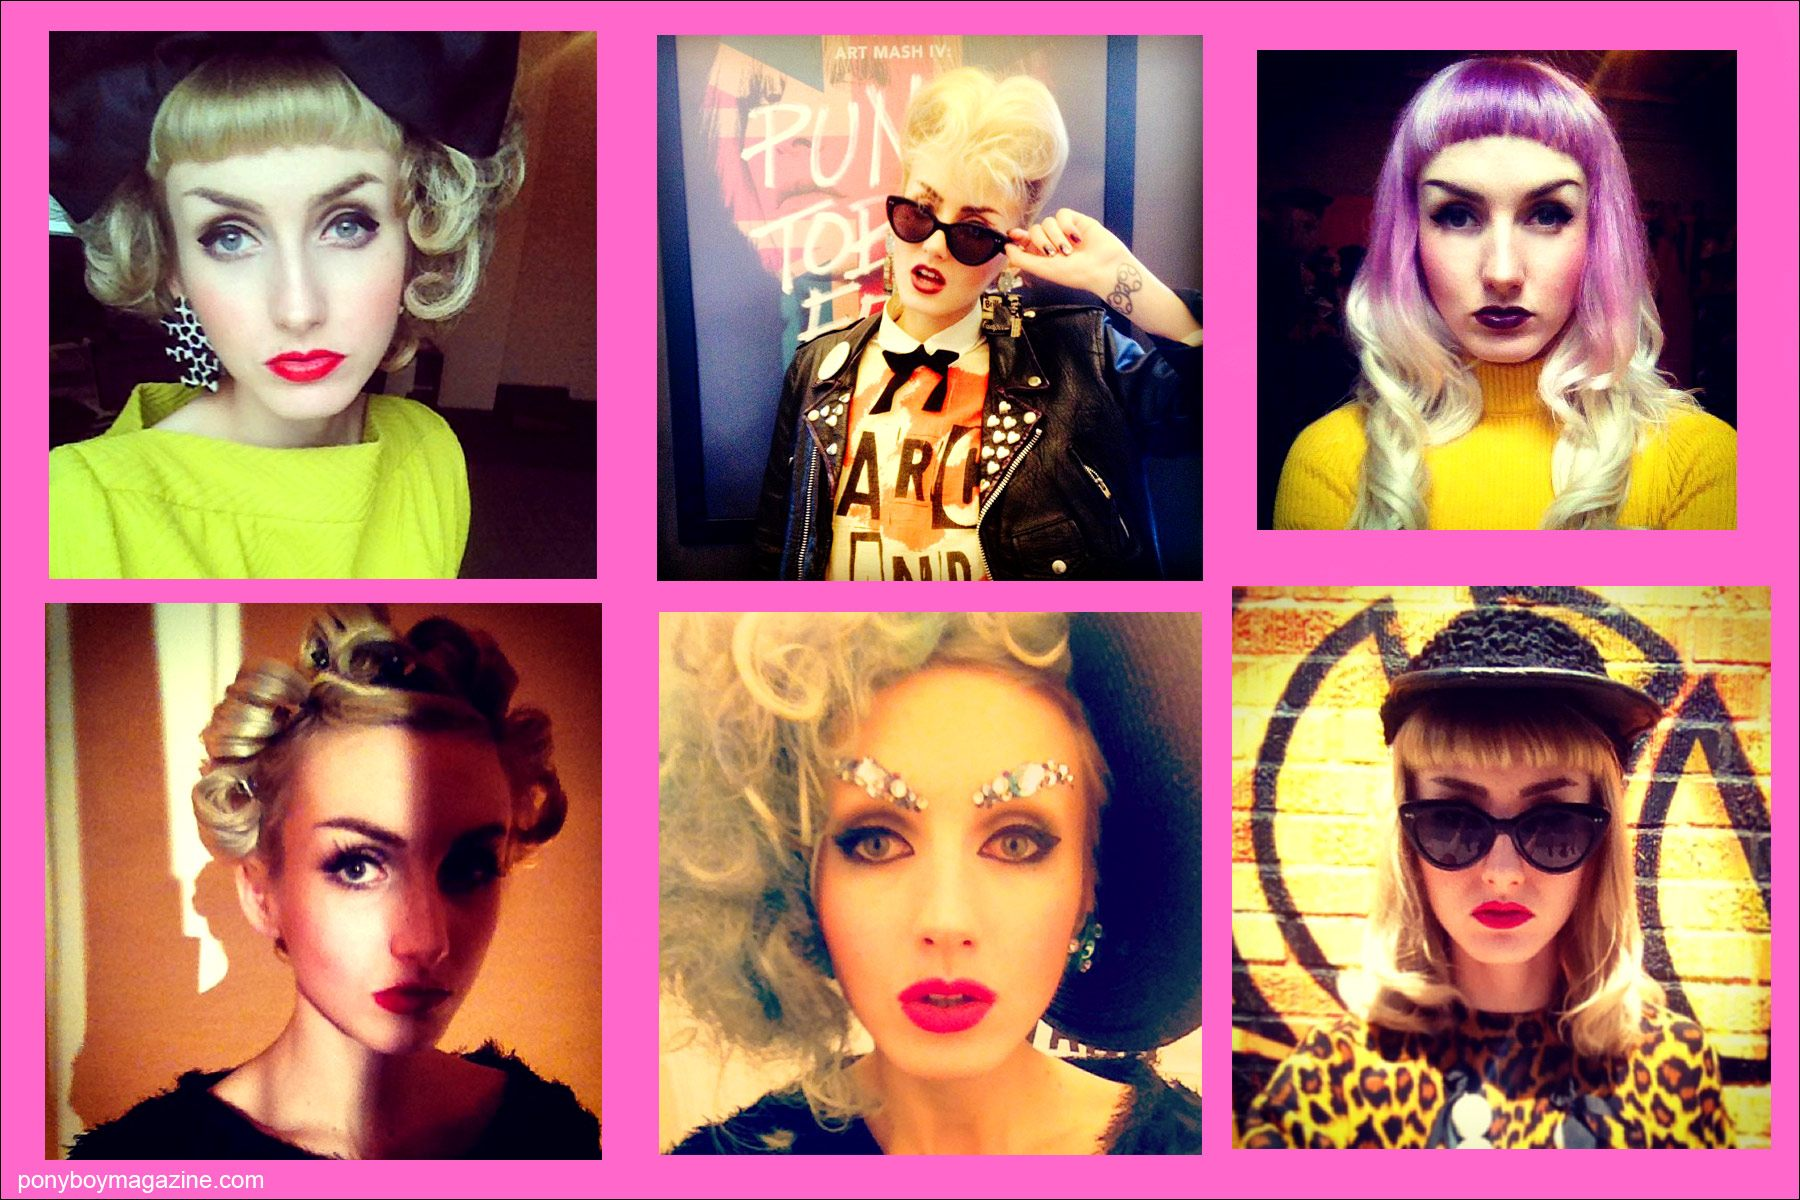 Self portraits of New York City model Stella Rose Saint Clair for Ponyboy Magazine.